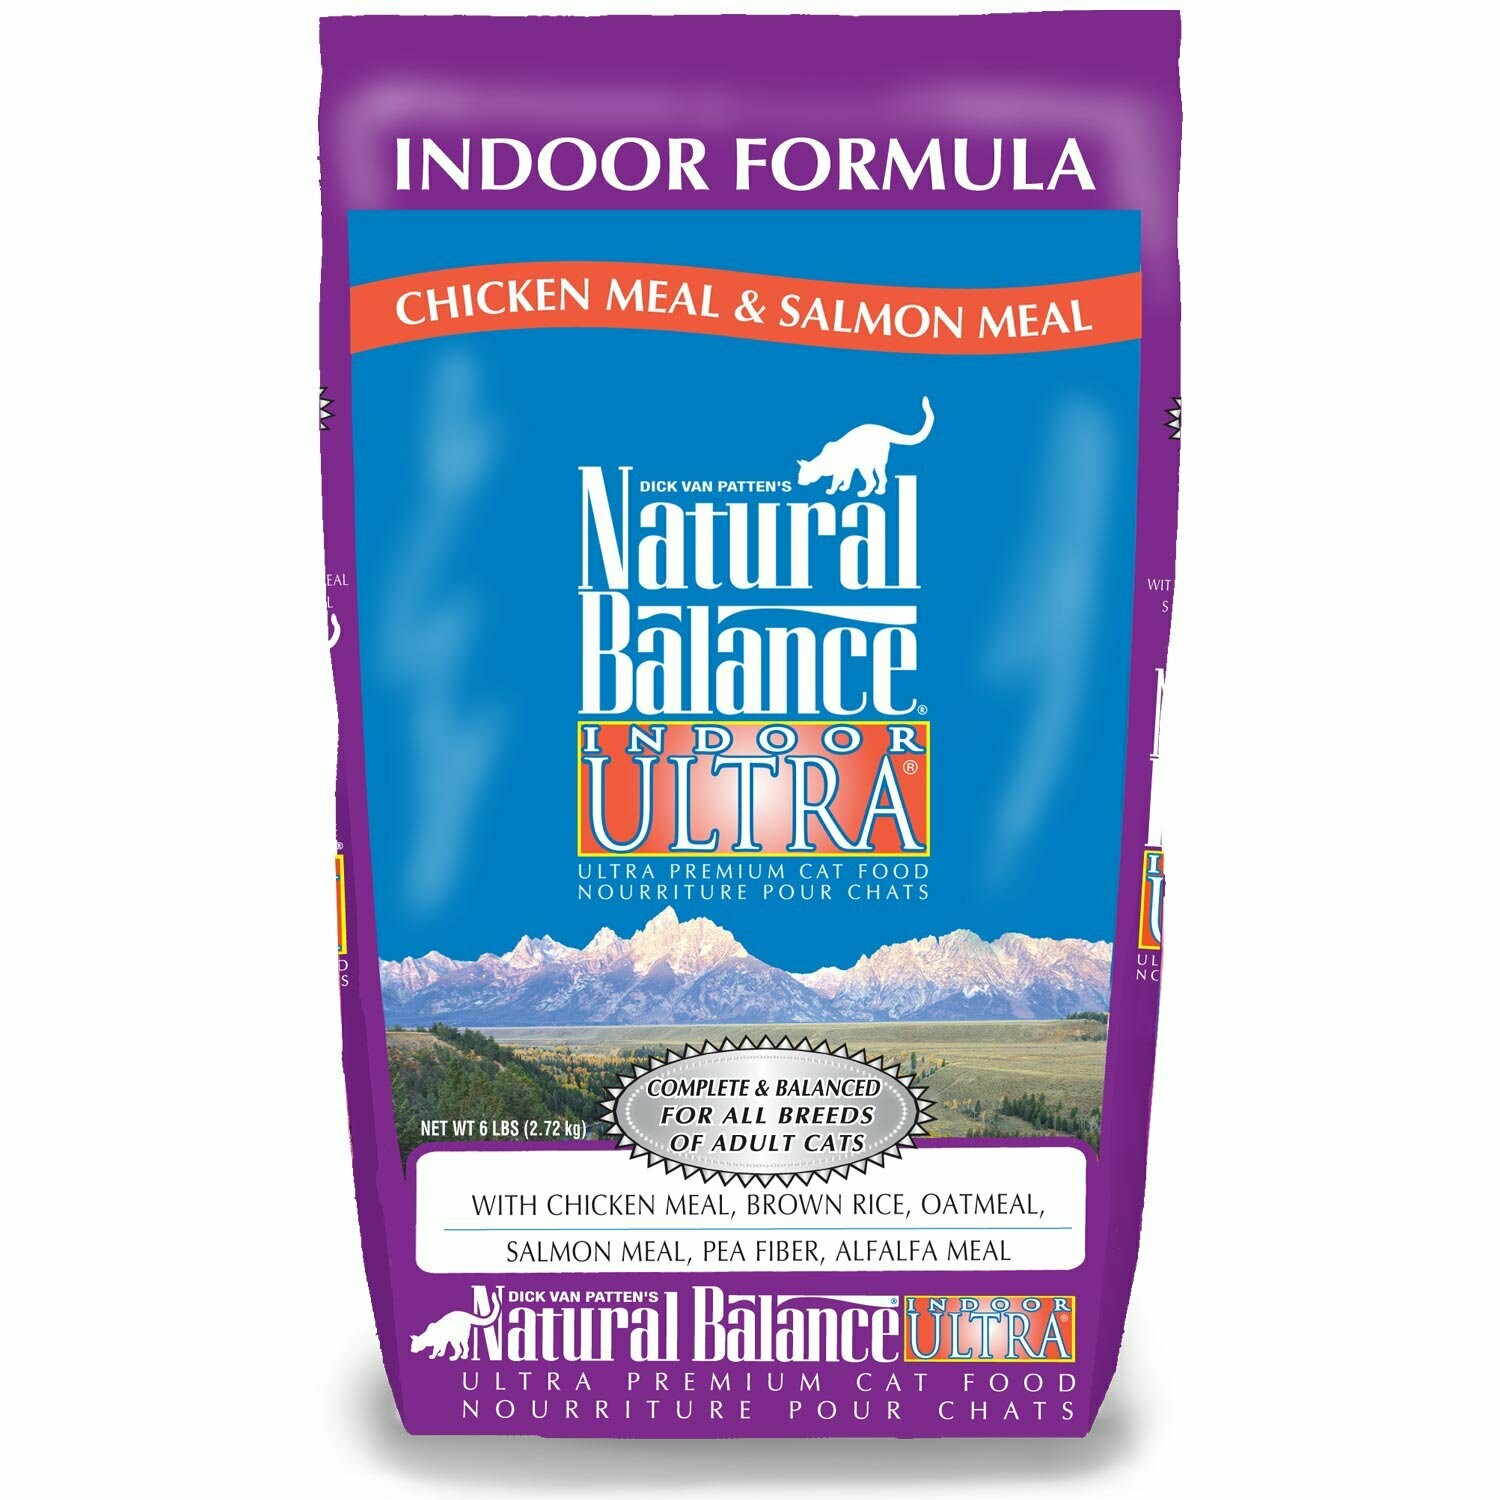 Natural Balance Indoor Ultra Chicken Meal & Salmon Meal Formula Dry Cat Food, 15 LBS (7/19) (A.R4)